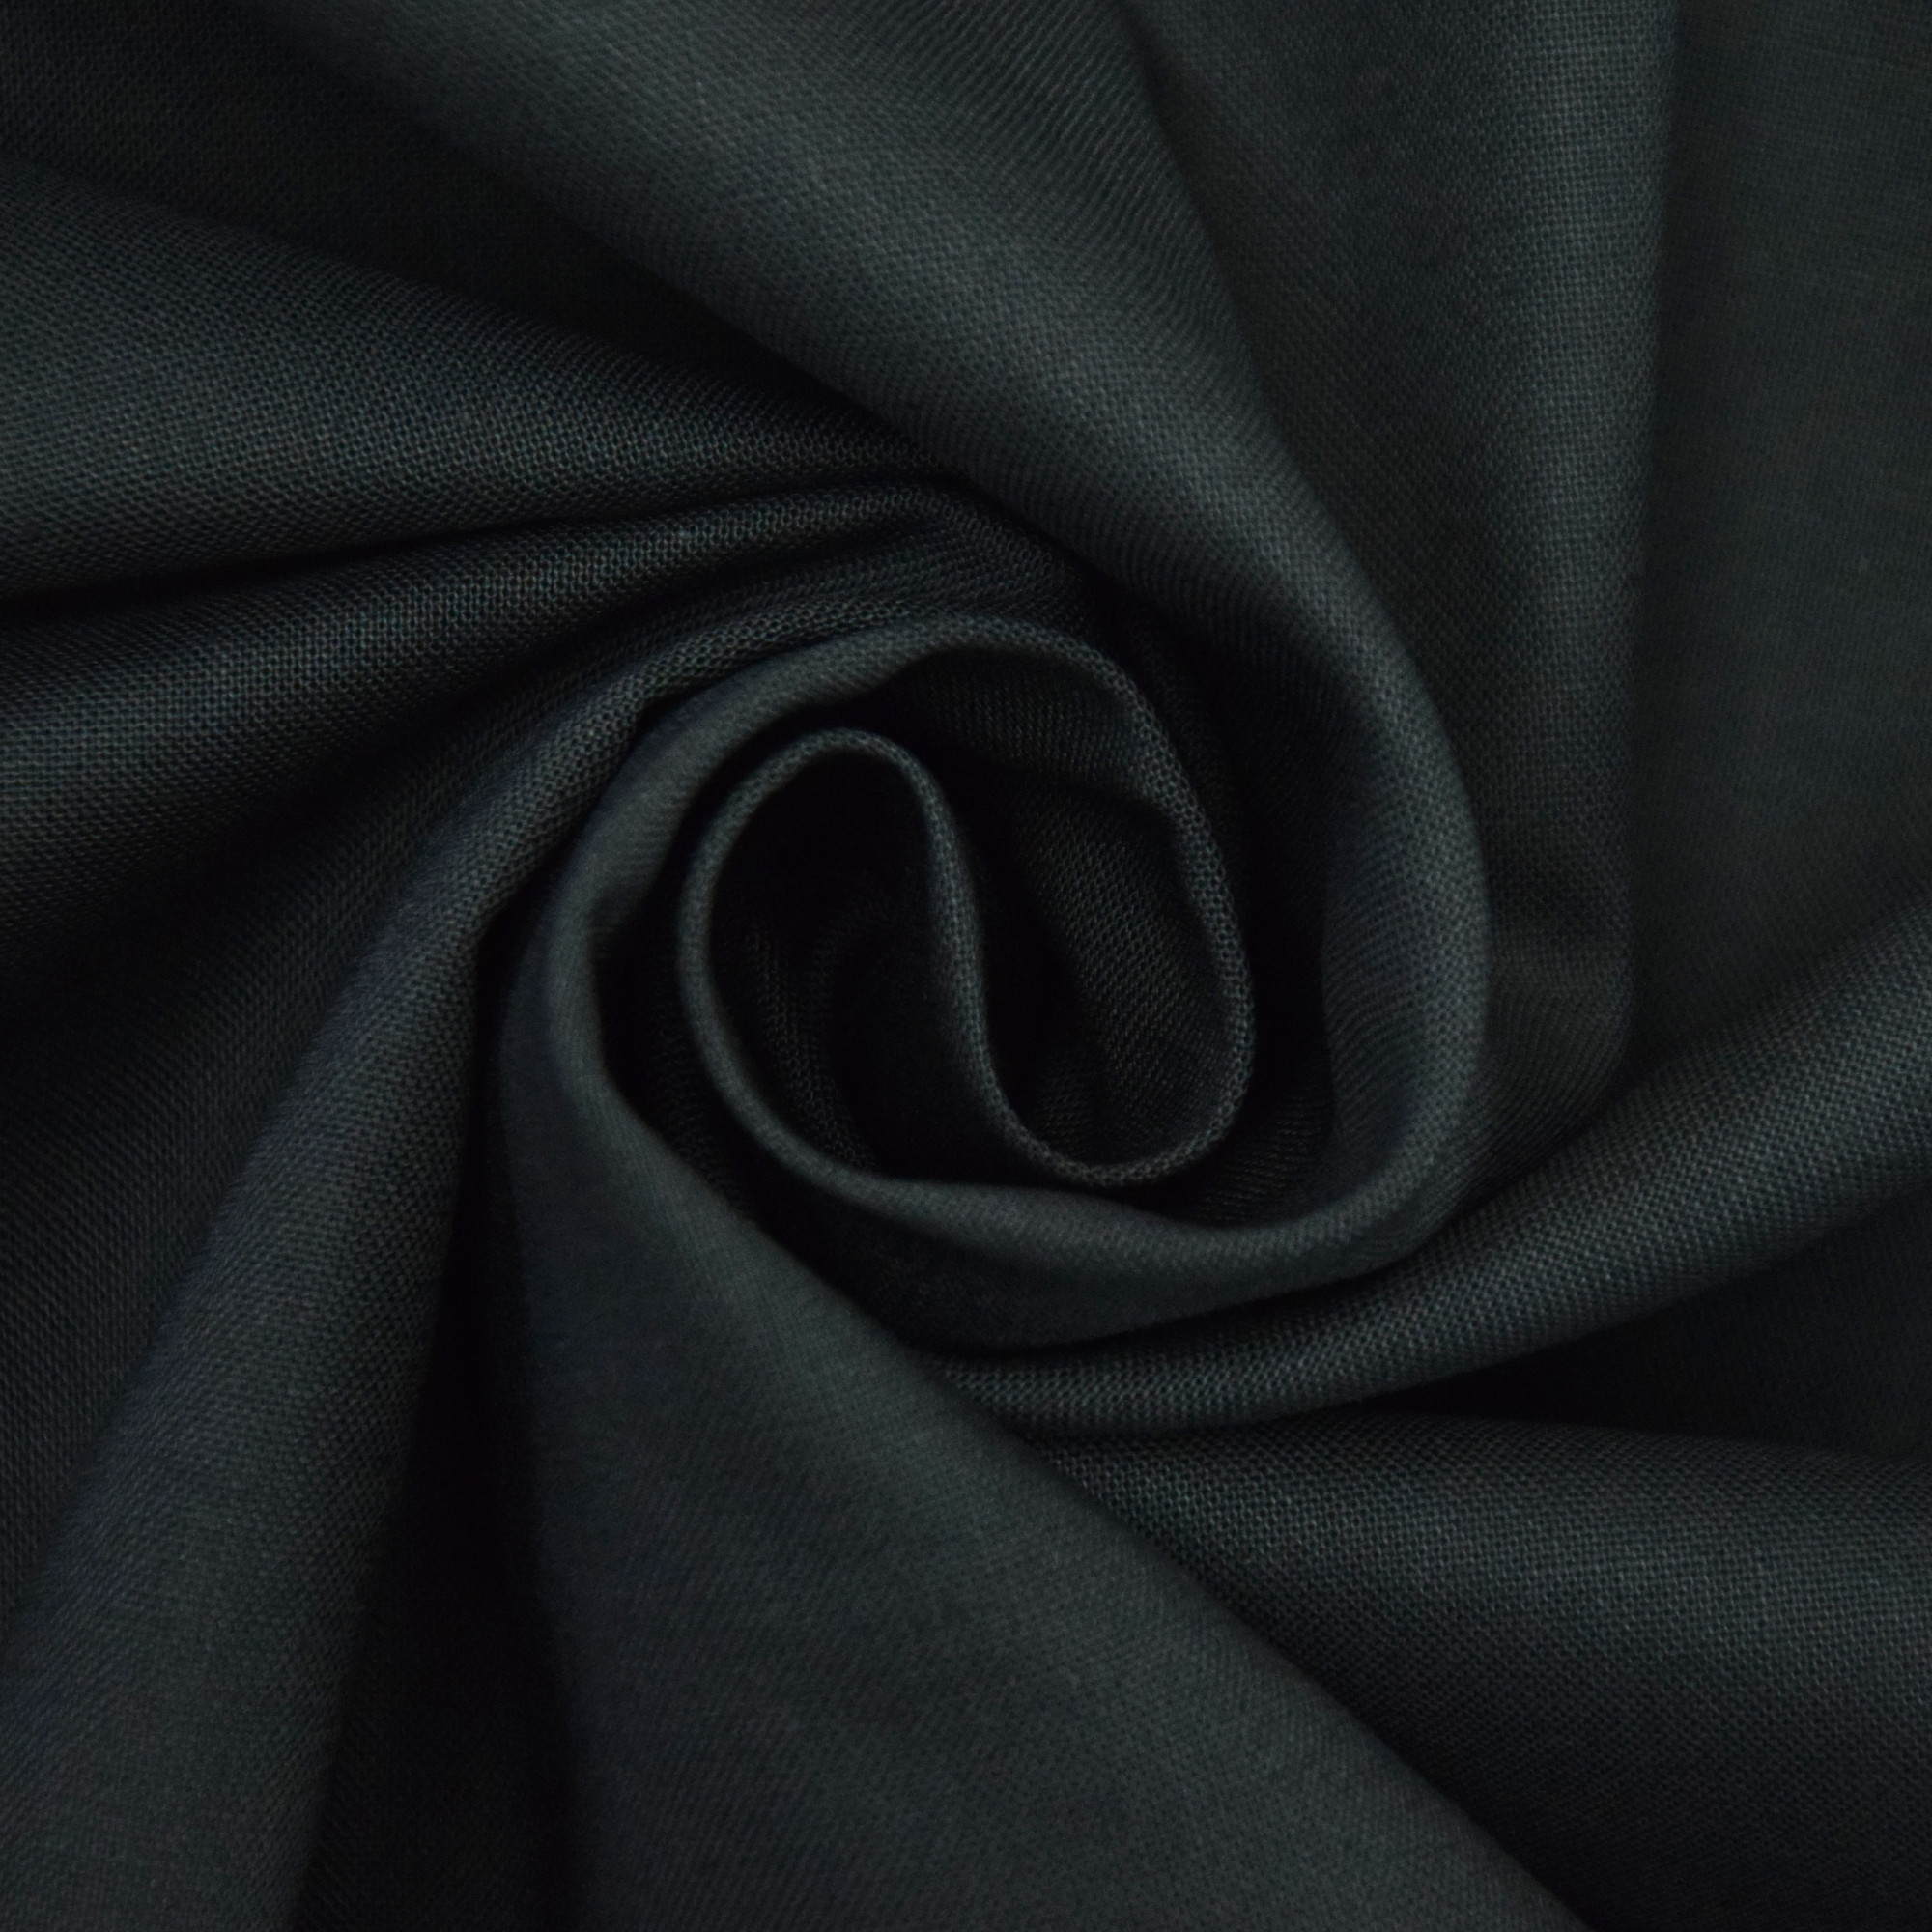 Cotton Cretonne anthracite | 100.018-8002 | grau